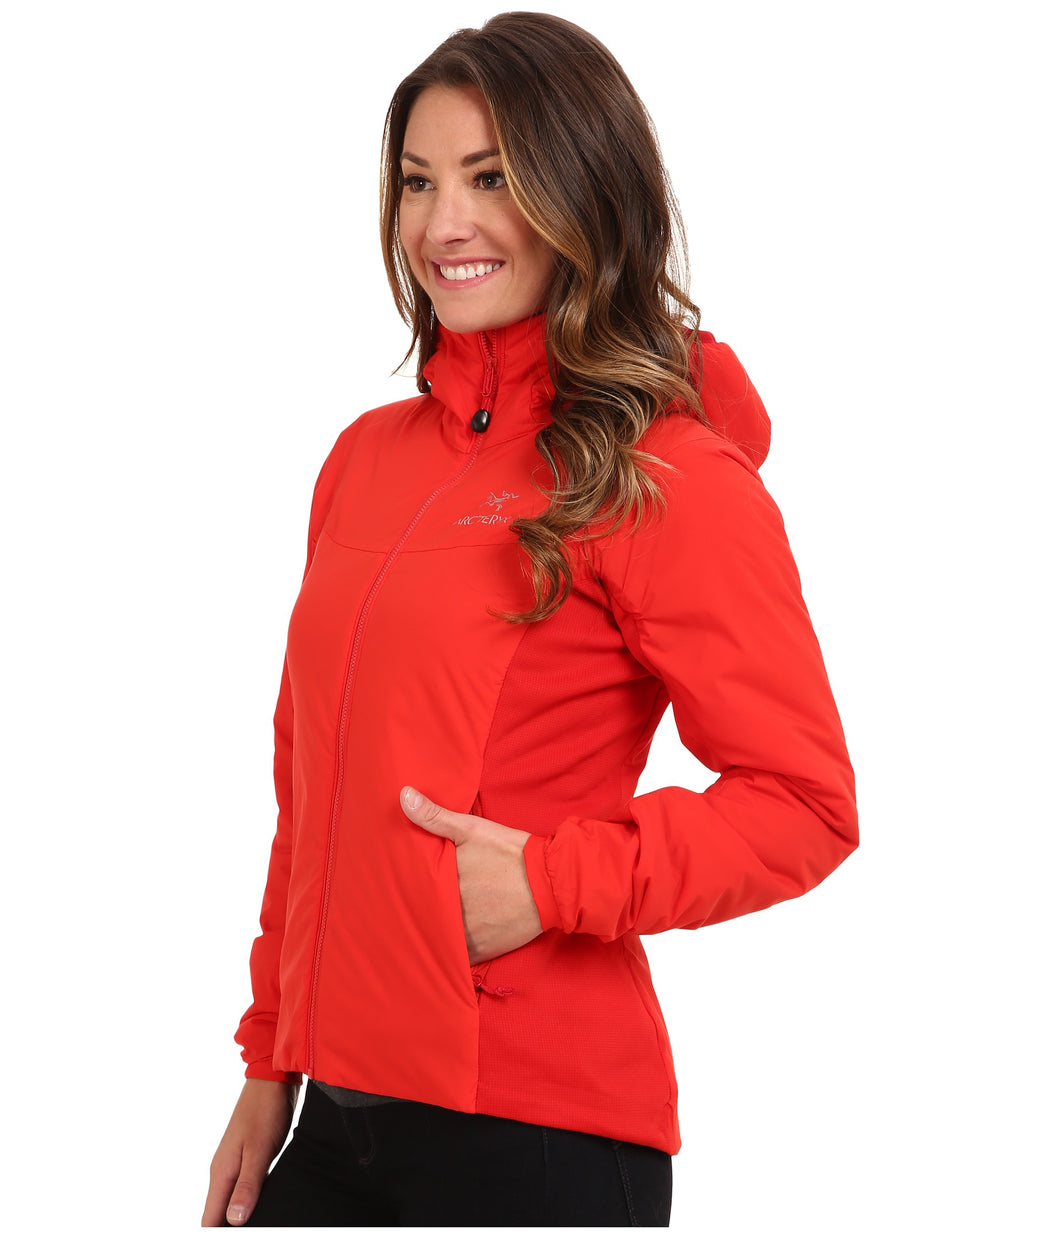 Women's Atom Light Hoody Jacket